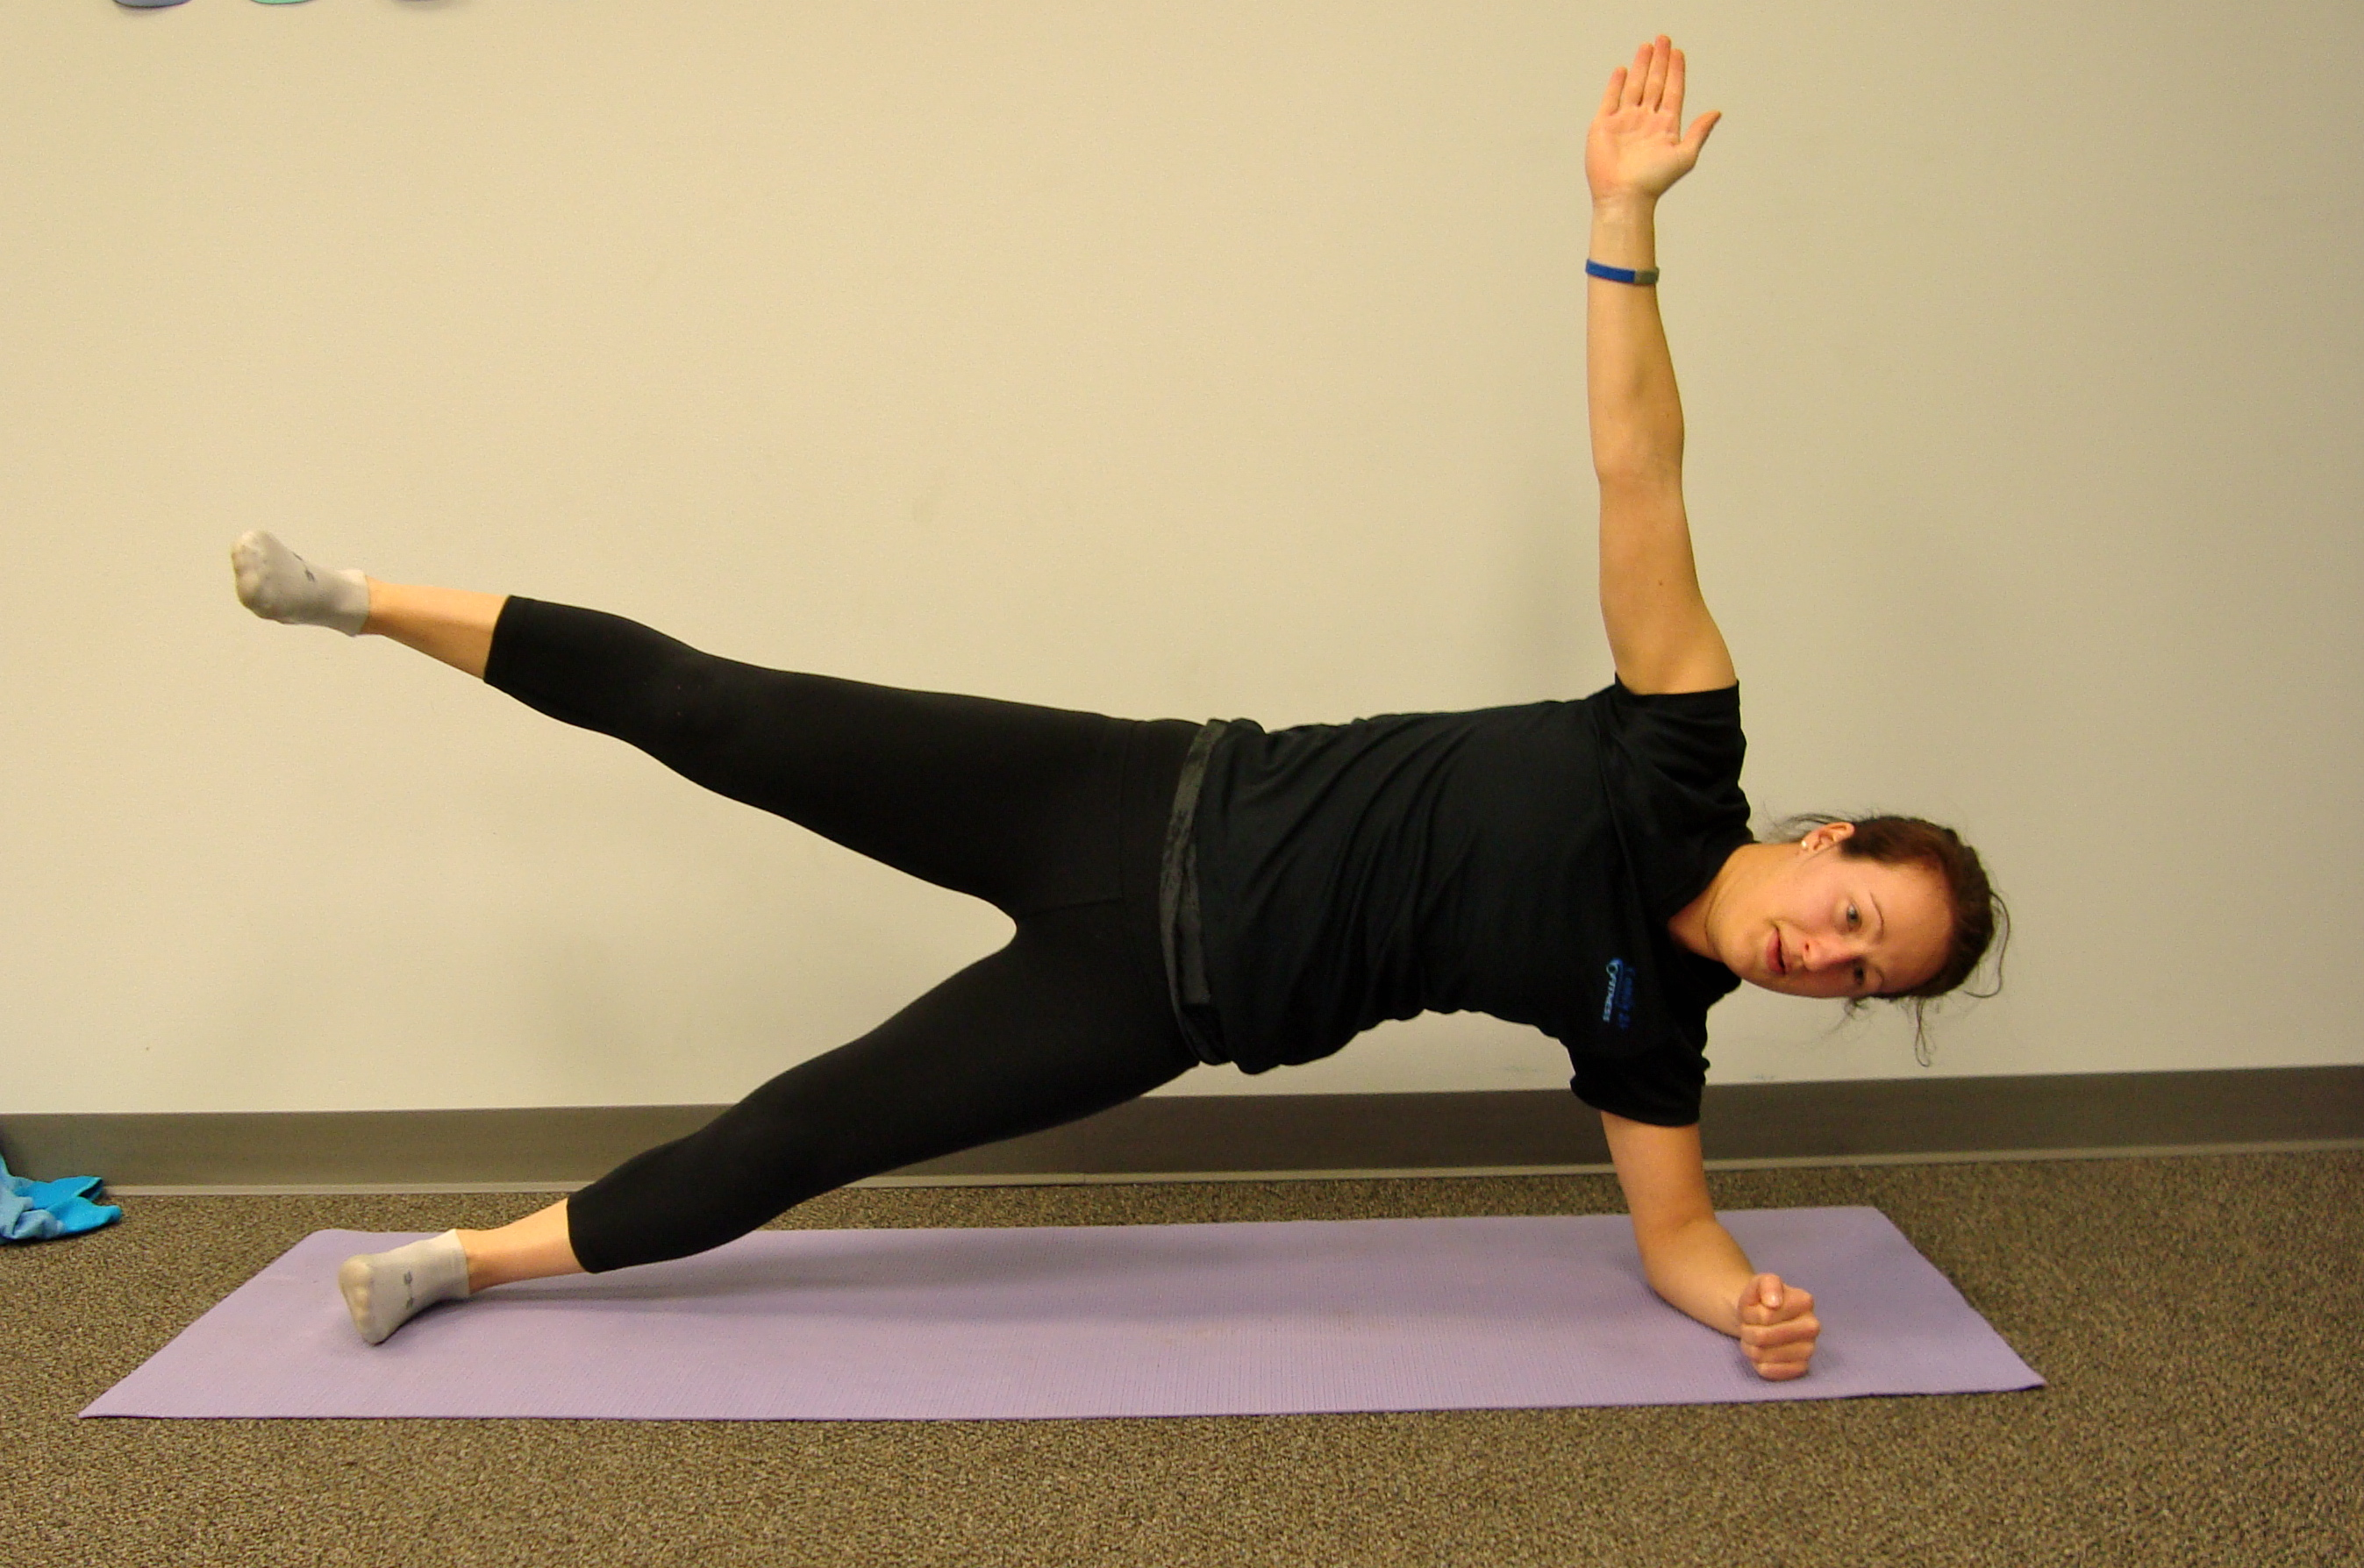 Plank Progression #8: Side Plank with Leg Raise - If a normal side plank is too easy then try lifting the top leg!